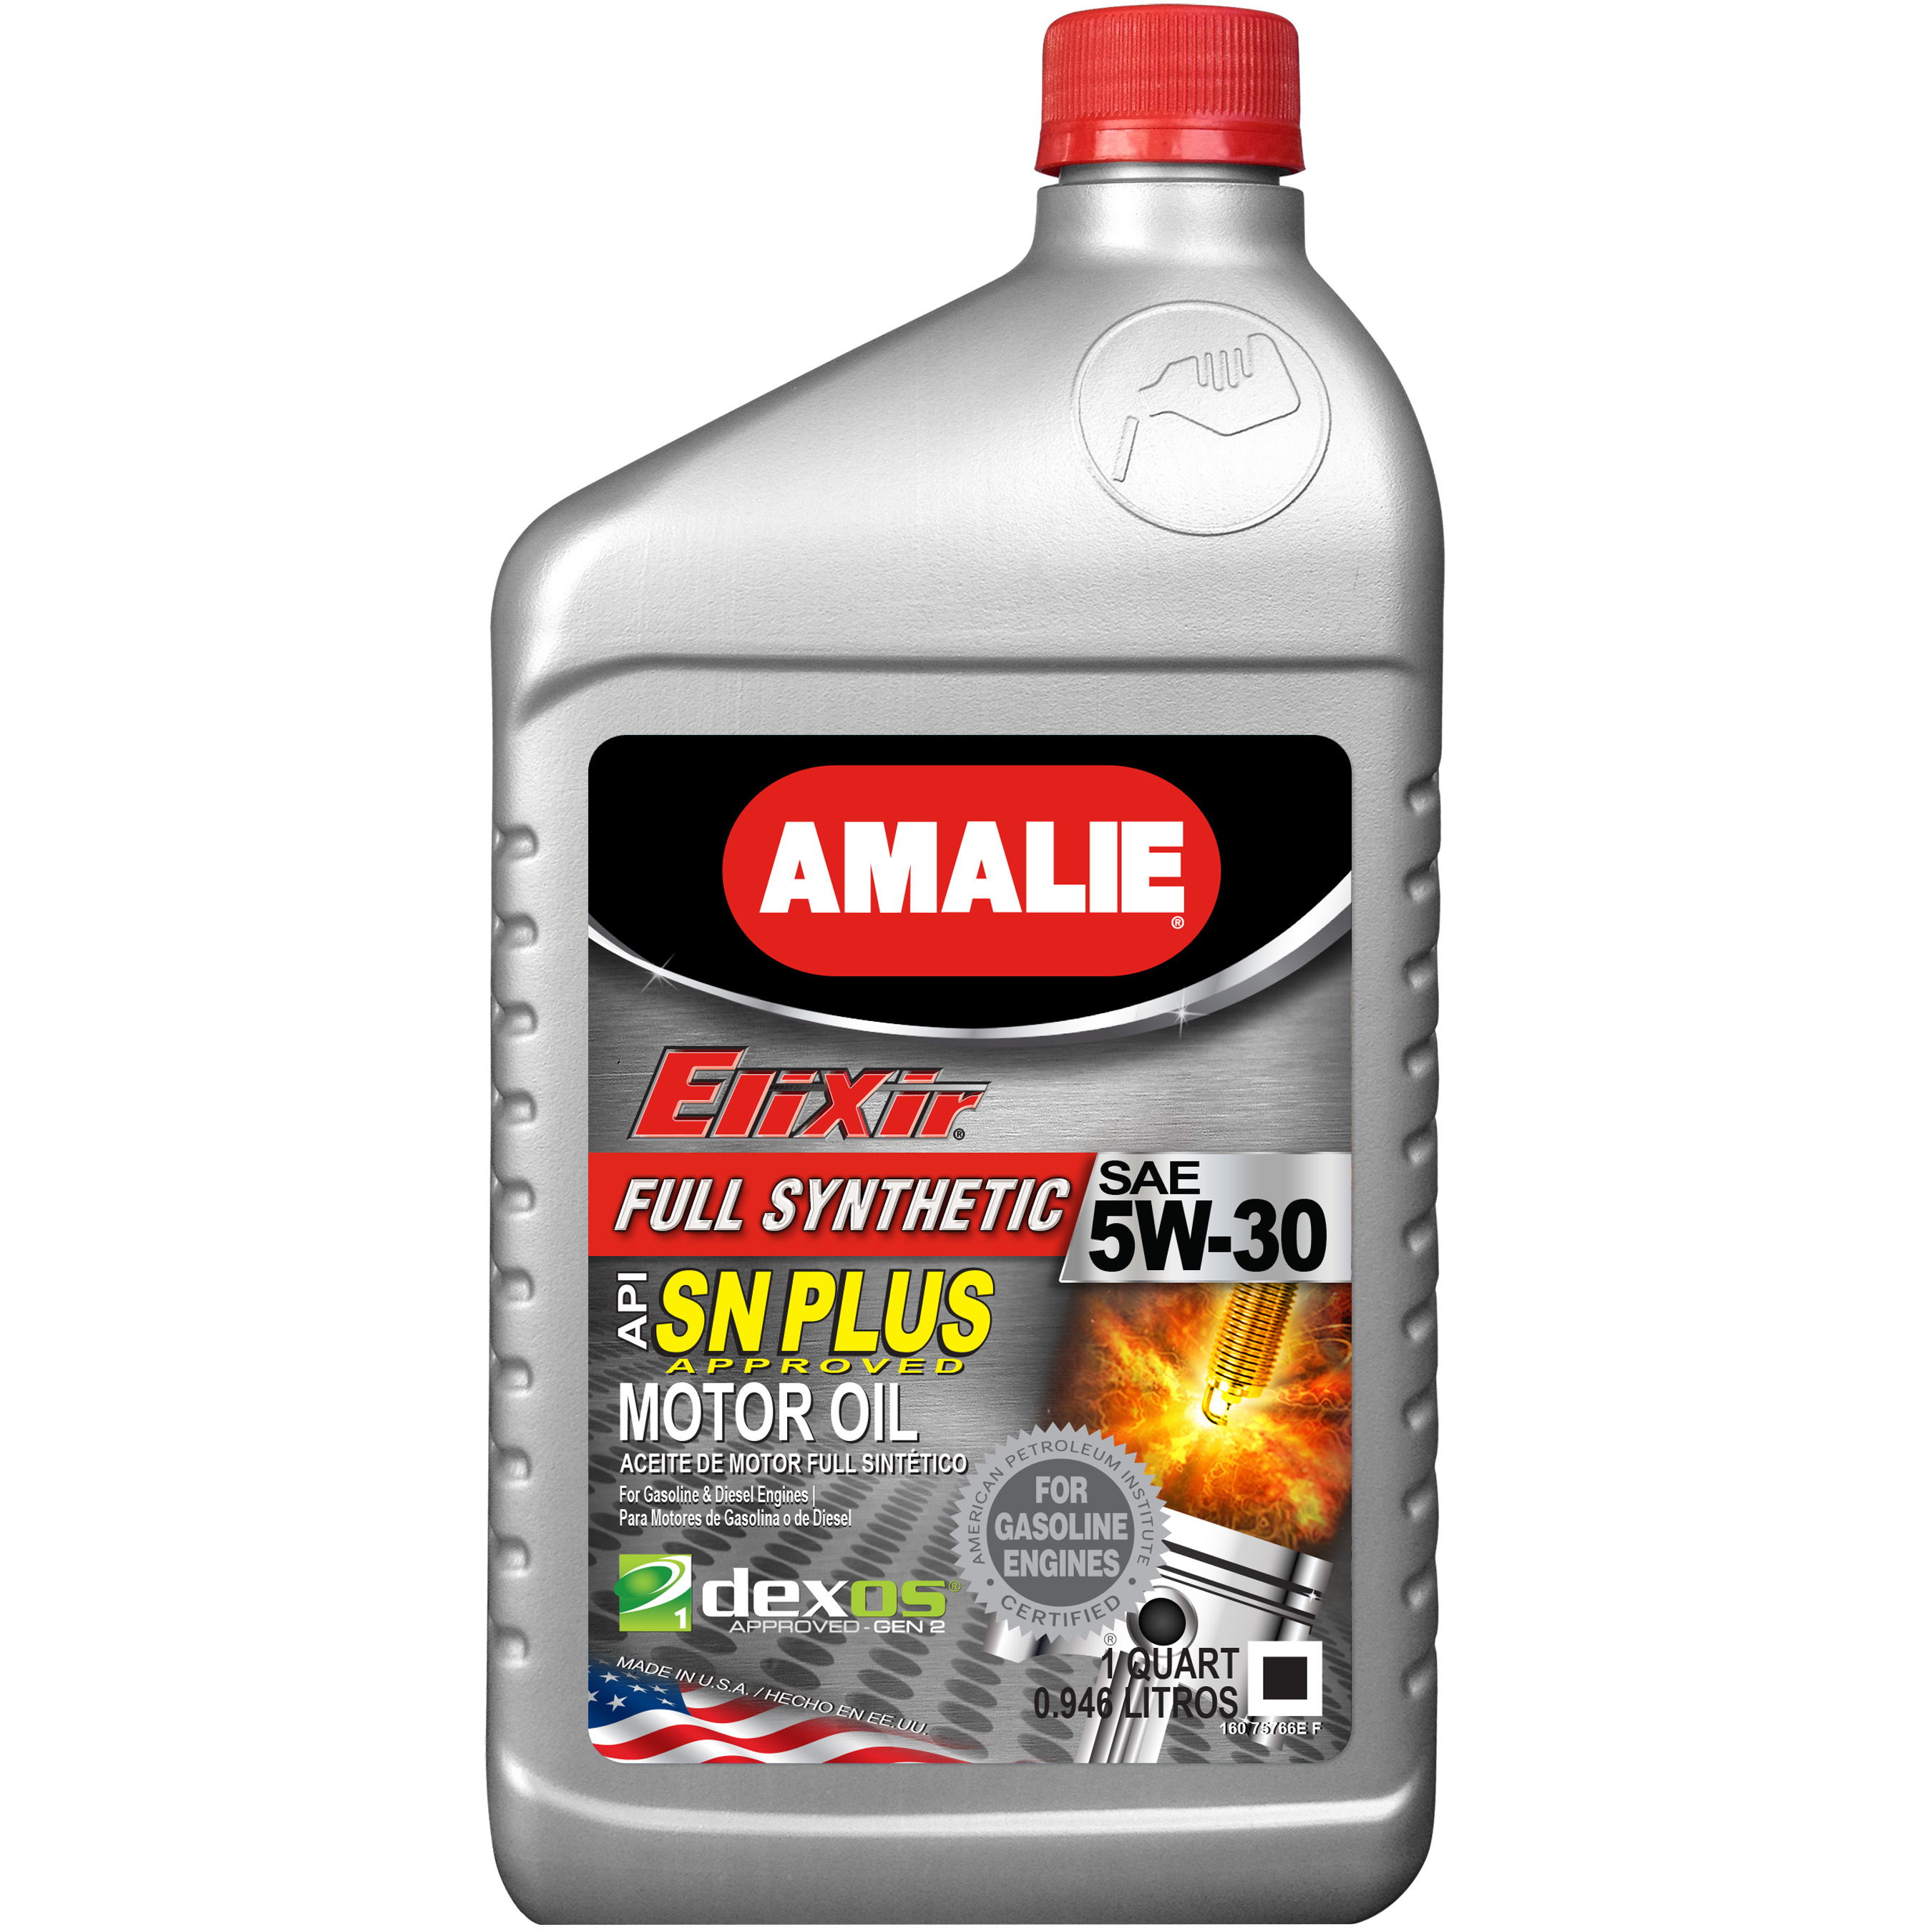 Amalie Oil Co